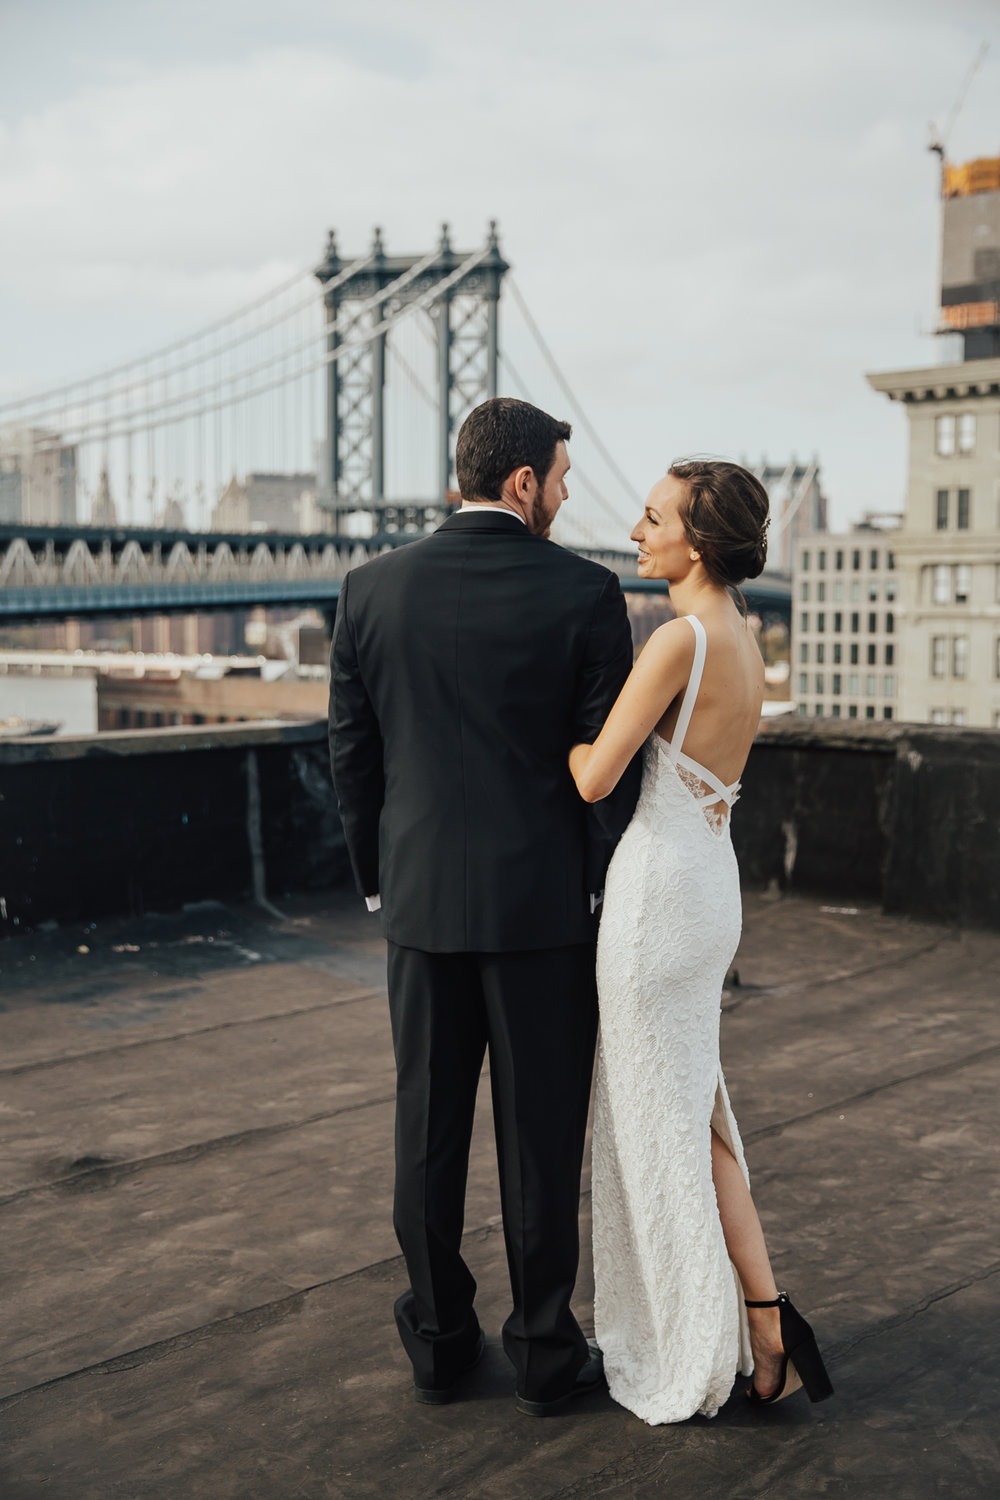 26-bridge-wedding-brooklyn-019.JPG